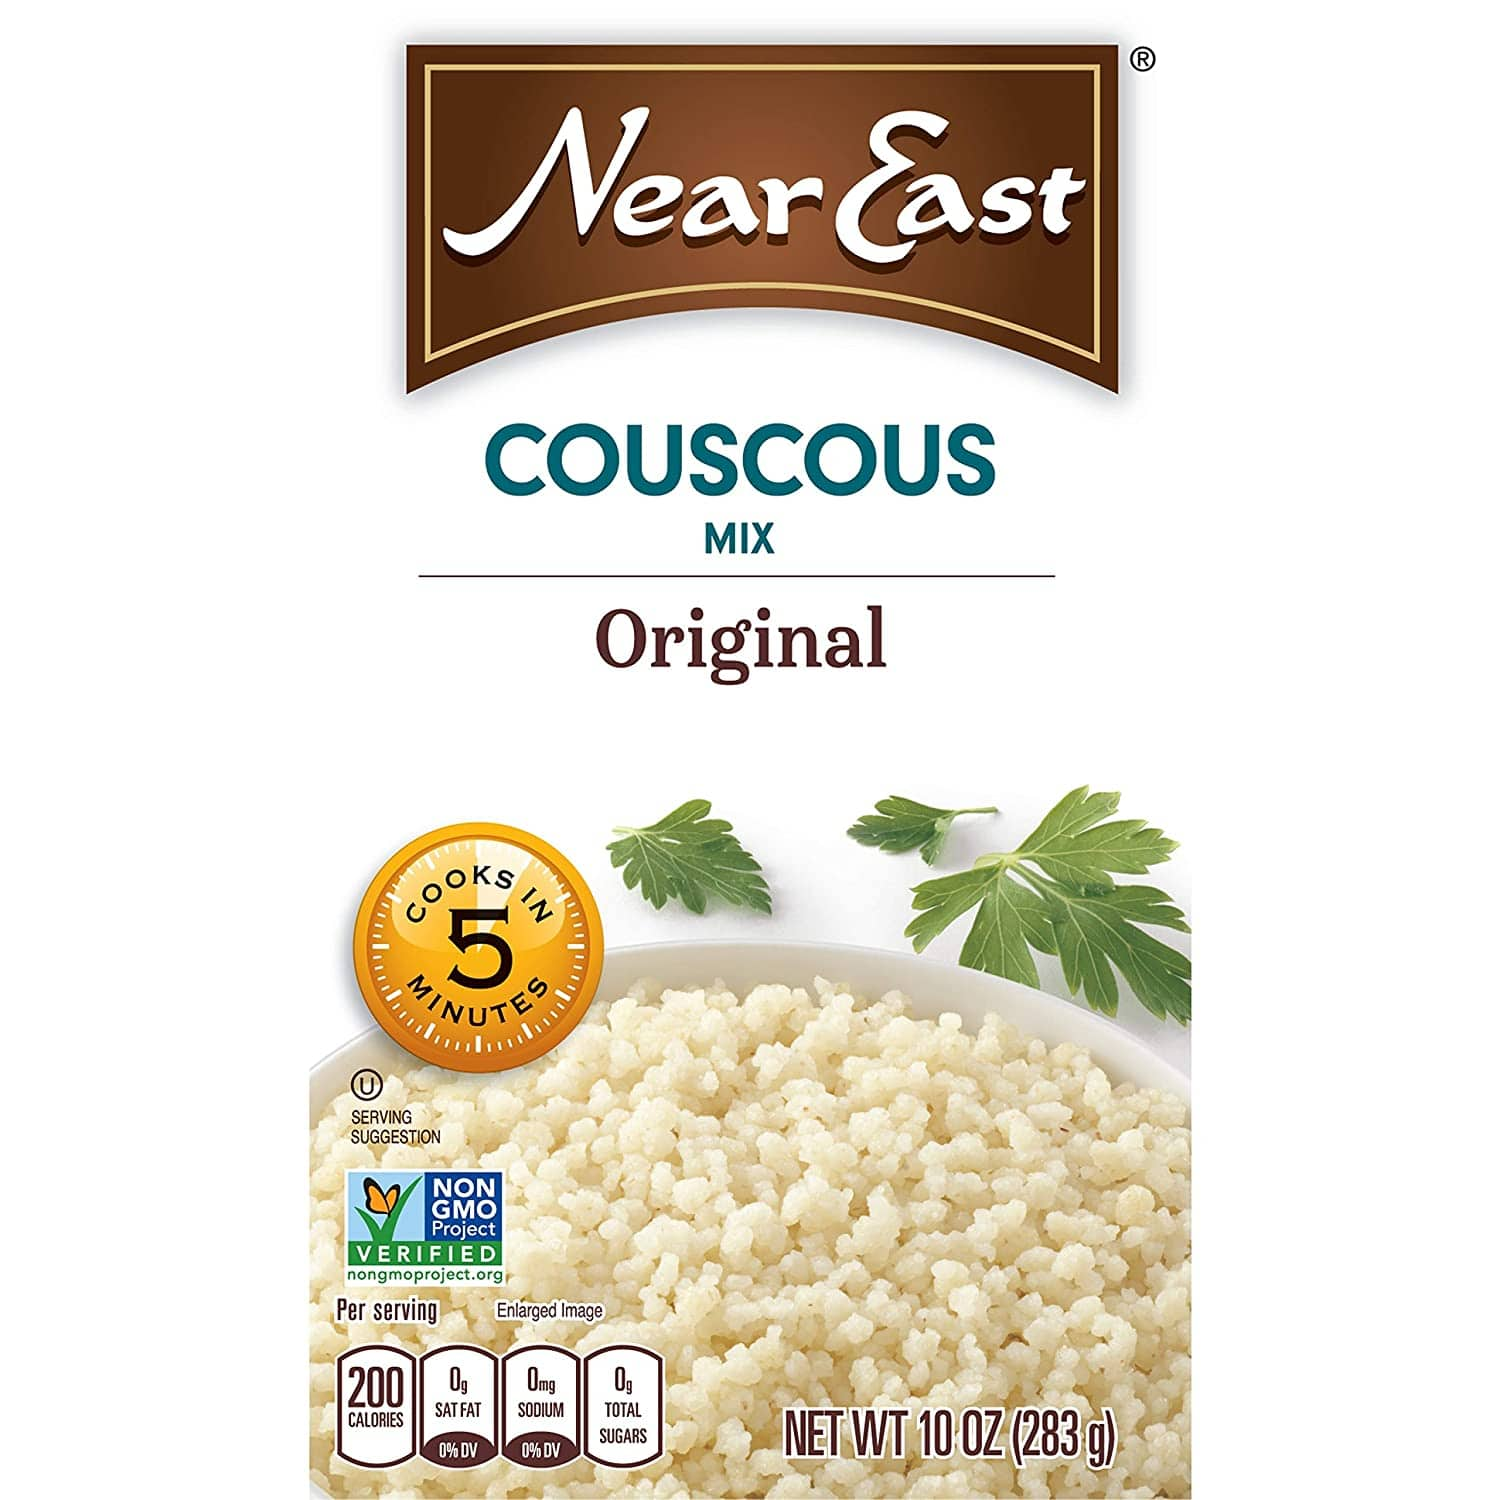 12-Pack Near East Couscous Mix (Original) $12.08 w/ S&S + Free S&H w/ Prime or orders $25+ ~ Amazon